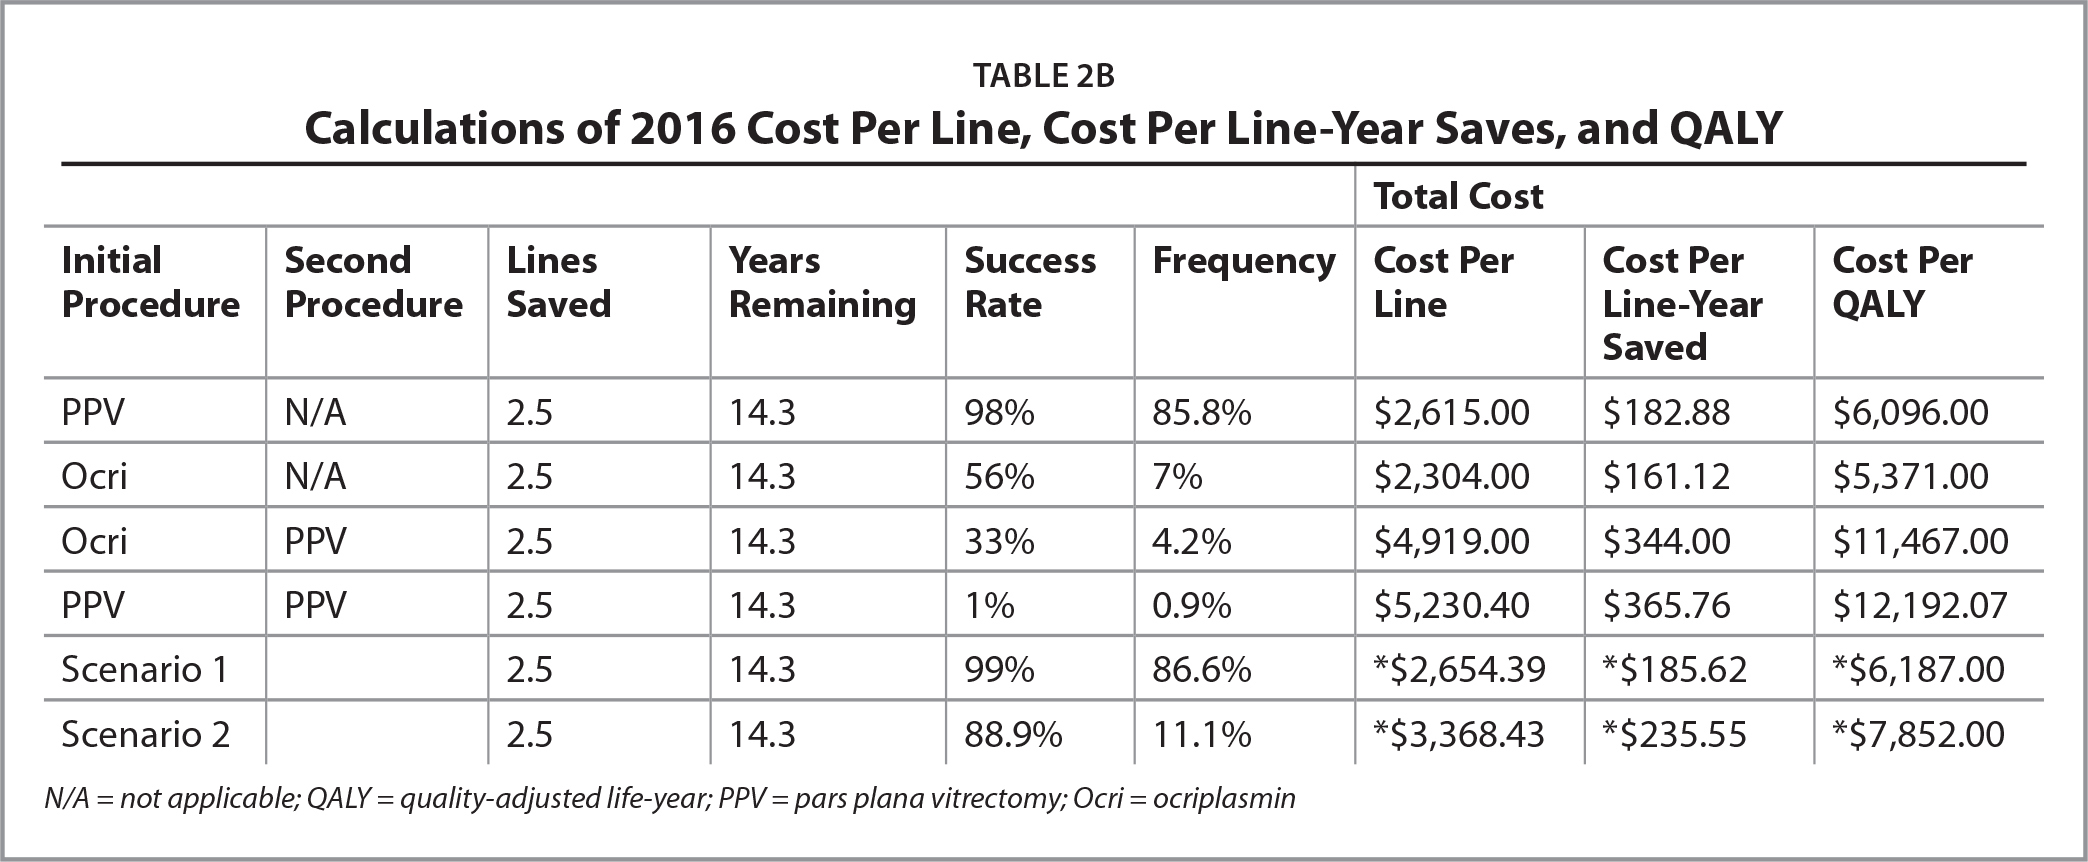 Calculations of 2016 Cost Per Line, Cost Per Line-Year Saves, and QALY